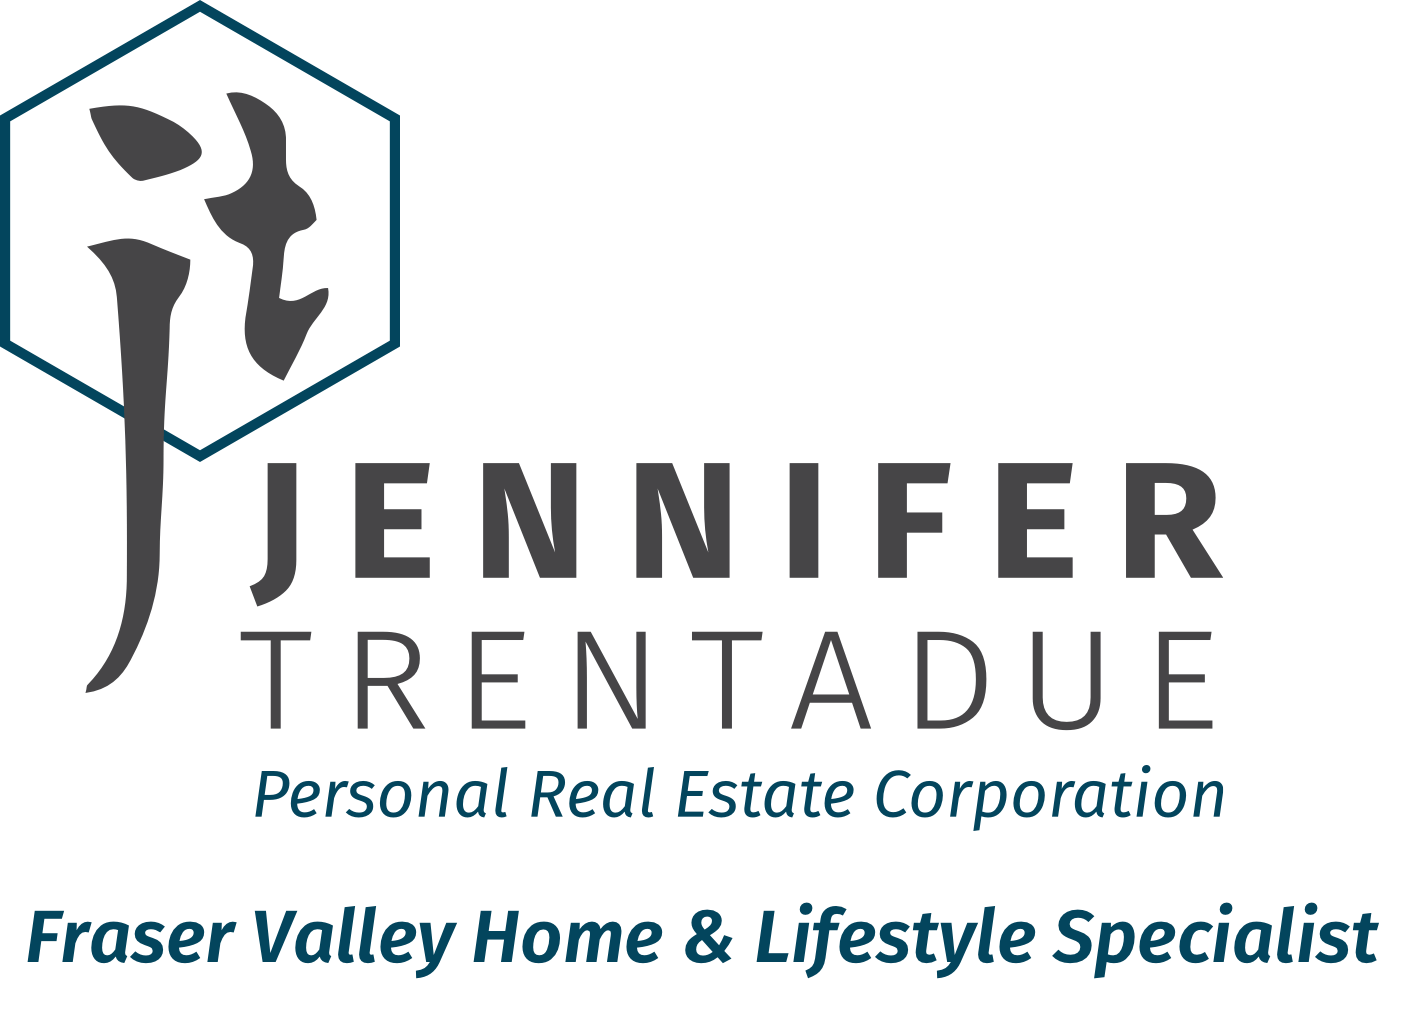 Jennifer Trentadue - Personal Real Estate Corporation